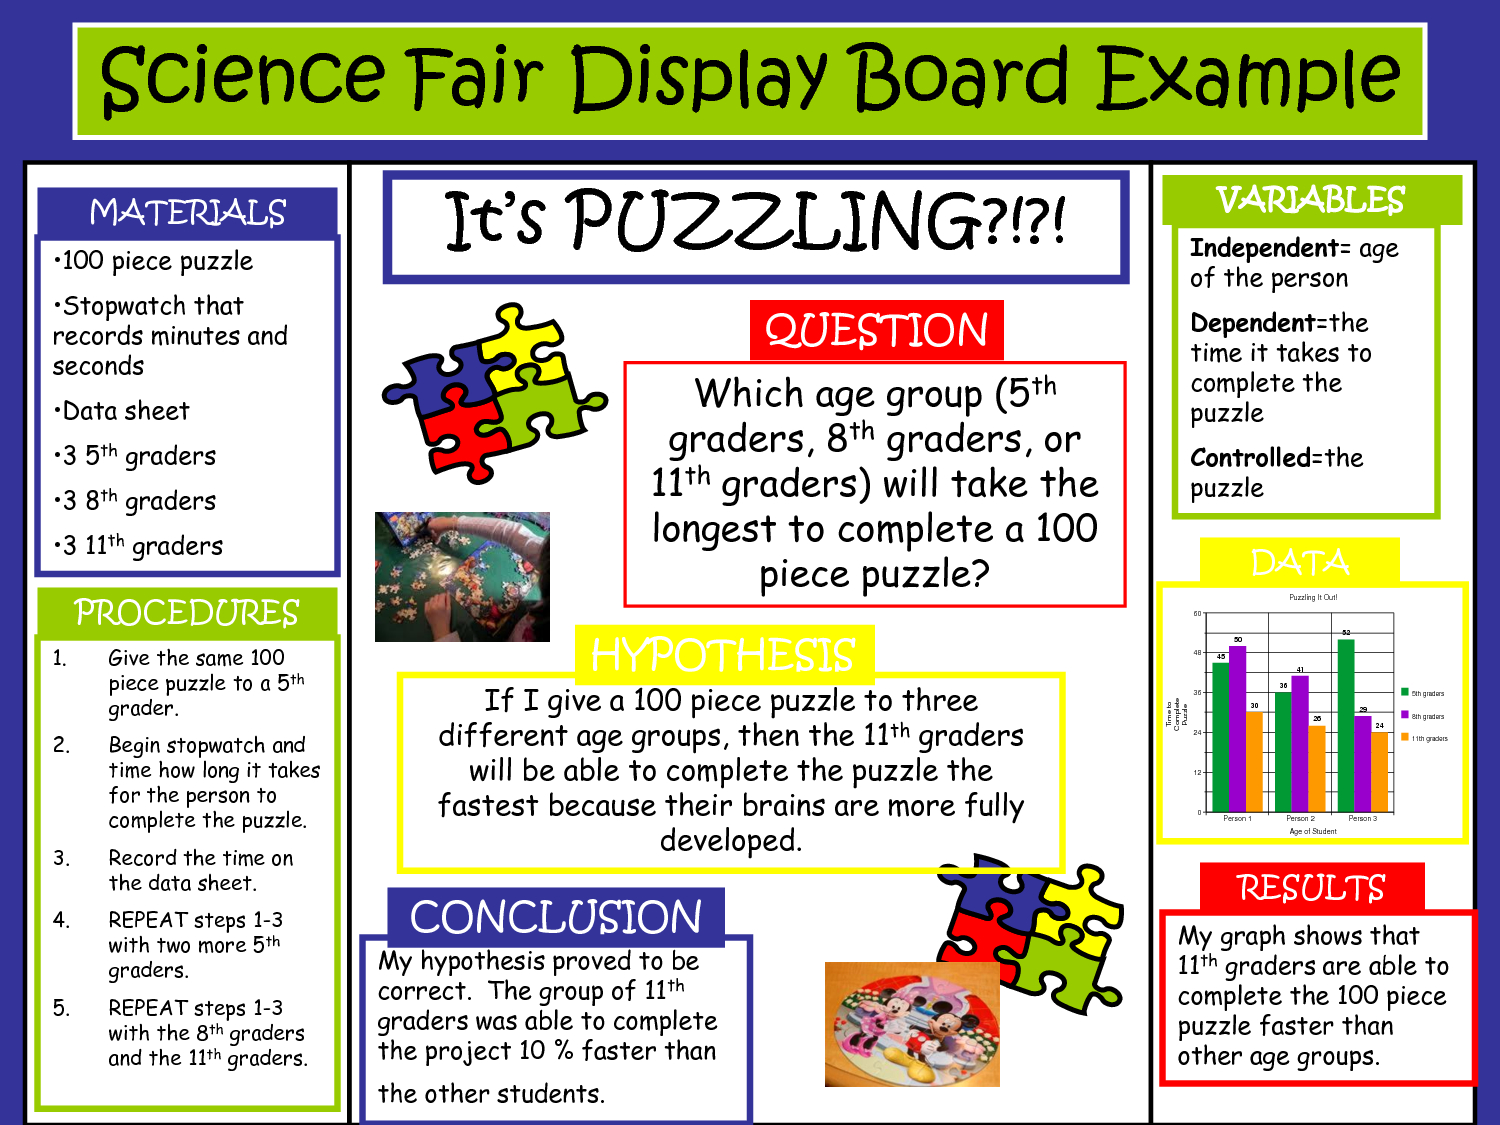 Science Fair Project Boards Examples | Science Fair Display Board - Free Printable Science Fair Project Board Labels